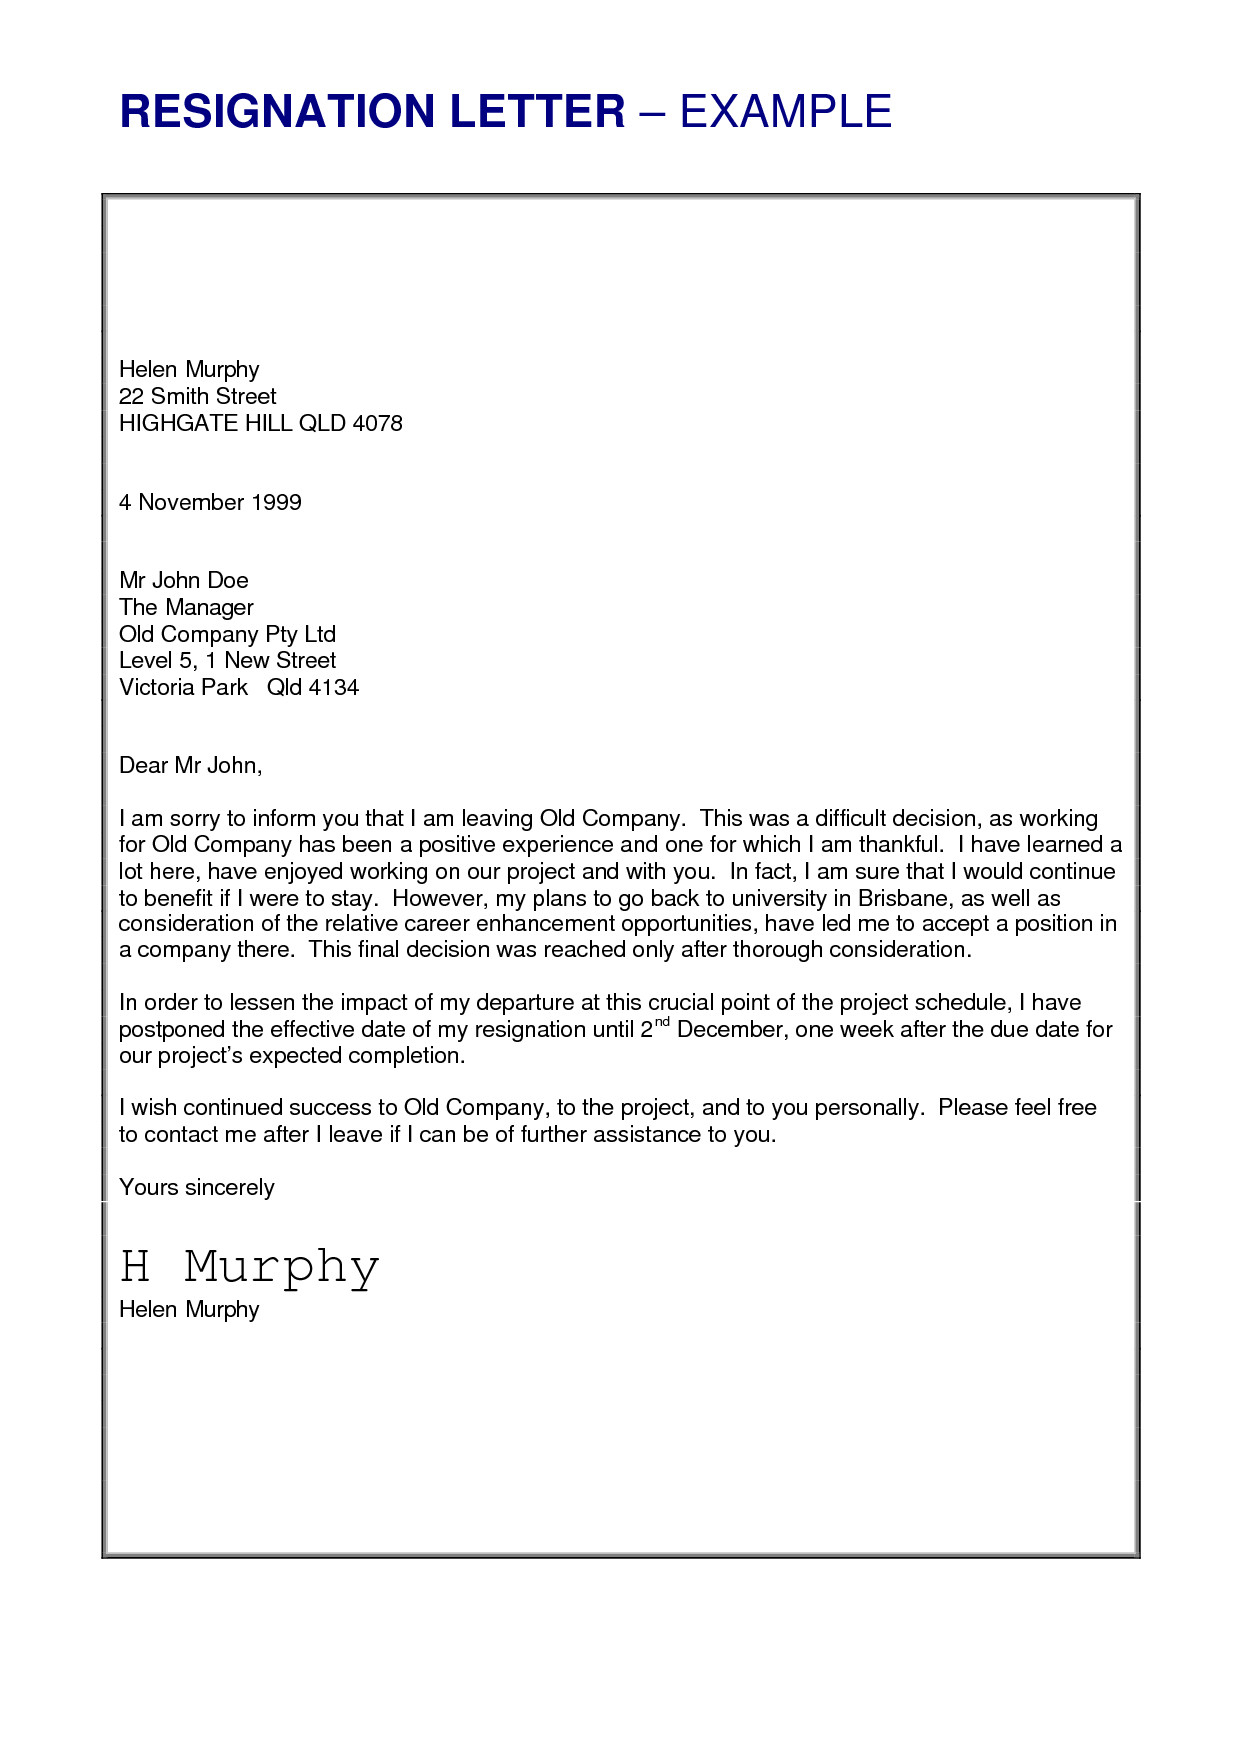 Resignation Letter Template Word Free - Resignation Templates Microsoft Word Unique Job Resignation Letter